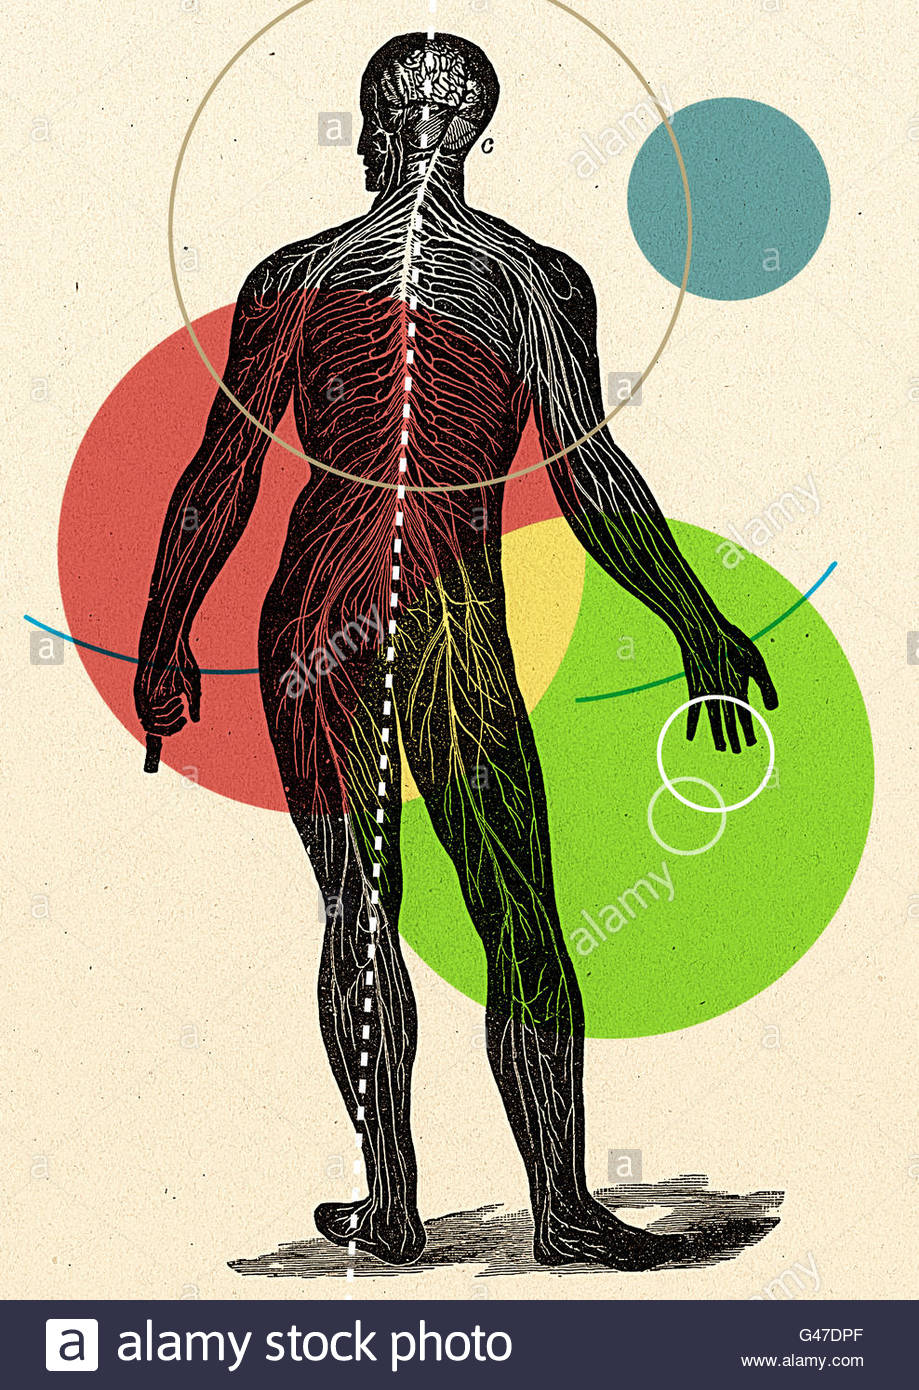 retro medical diagram illustration of human figure man woman veins anatomy anatomical - Stock Image